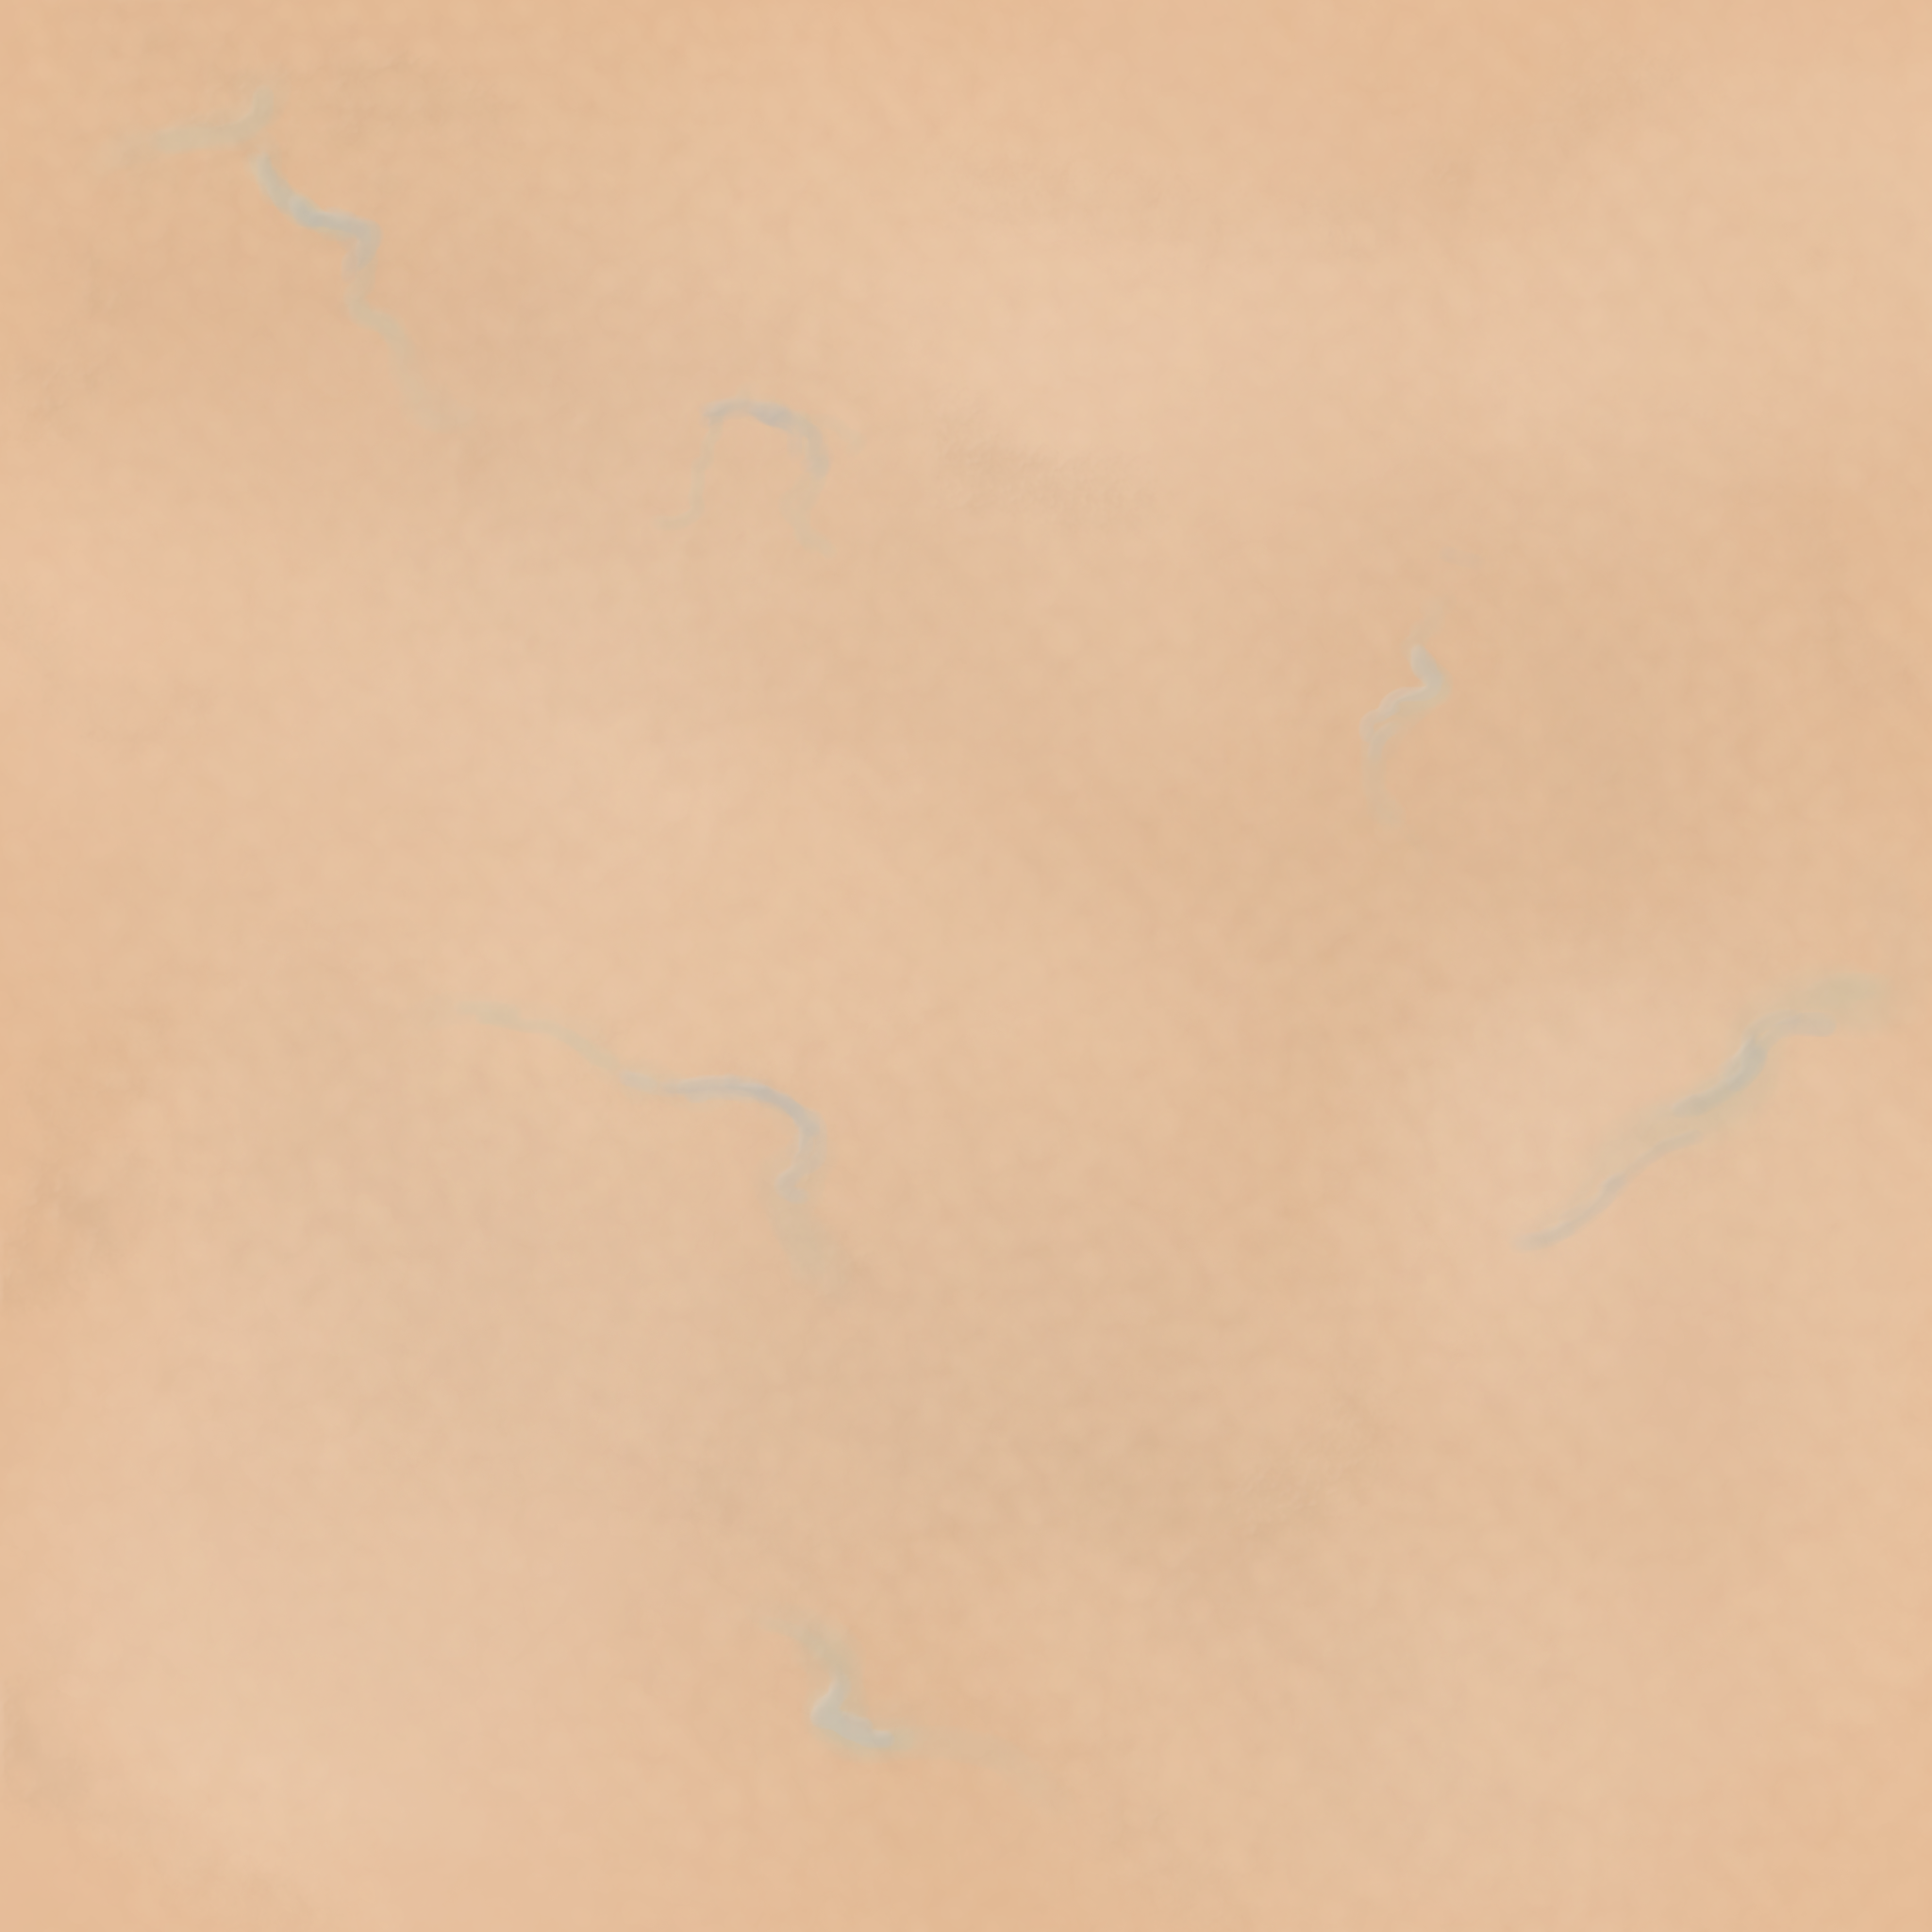 Skin Texture Png, png collections at sccpre.cat.